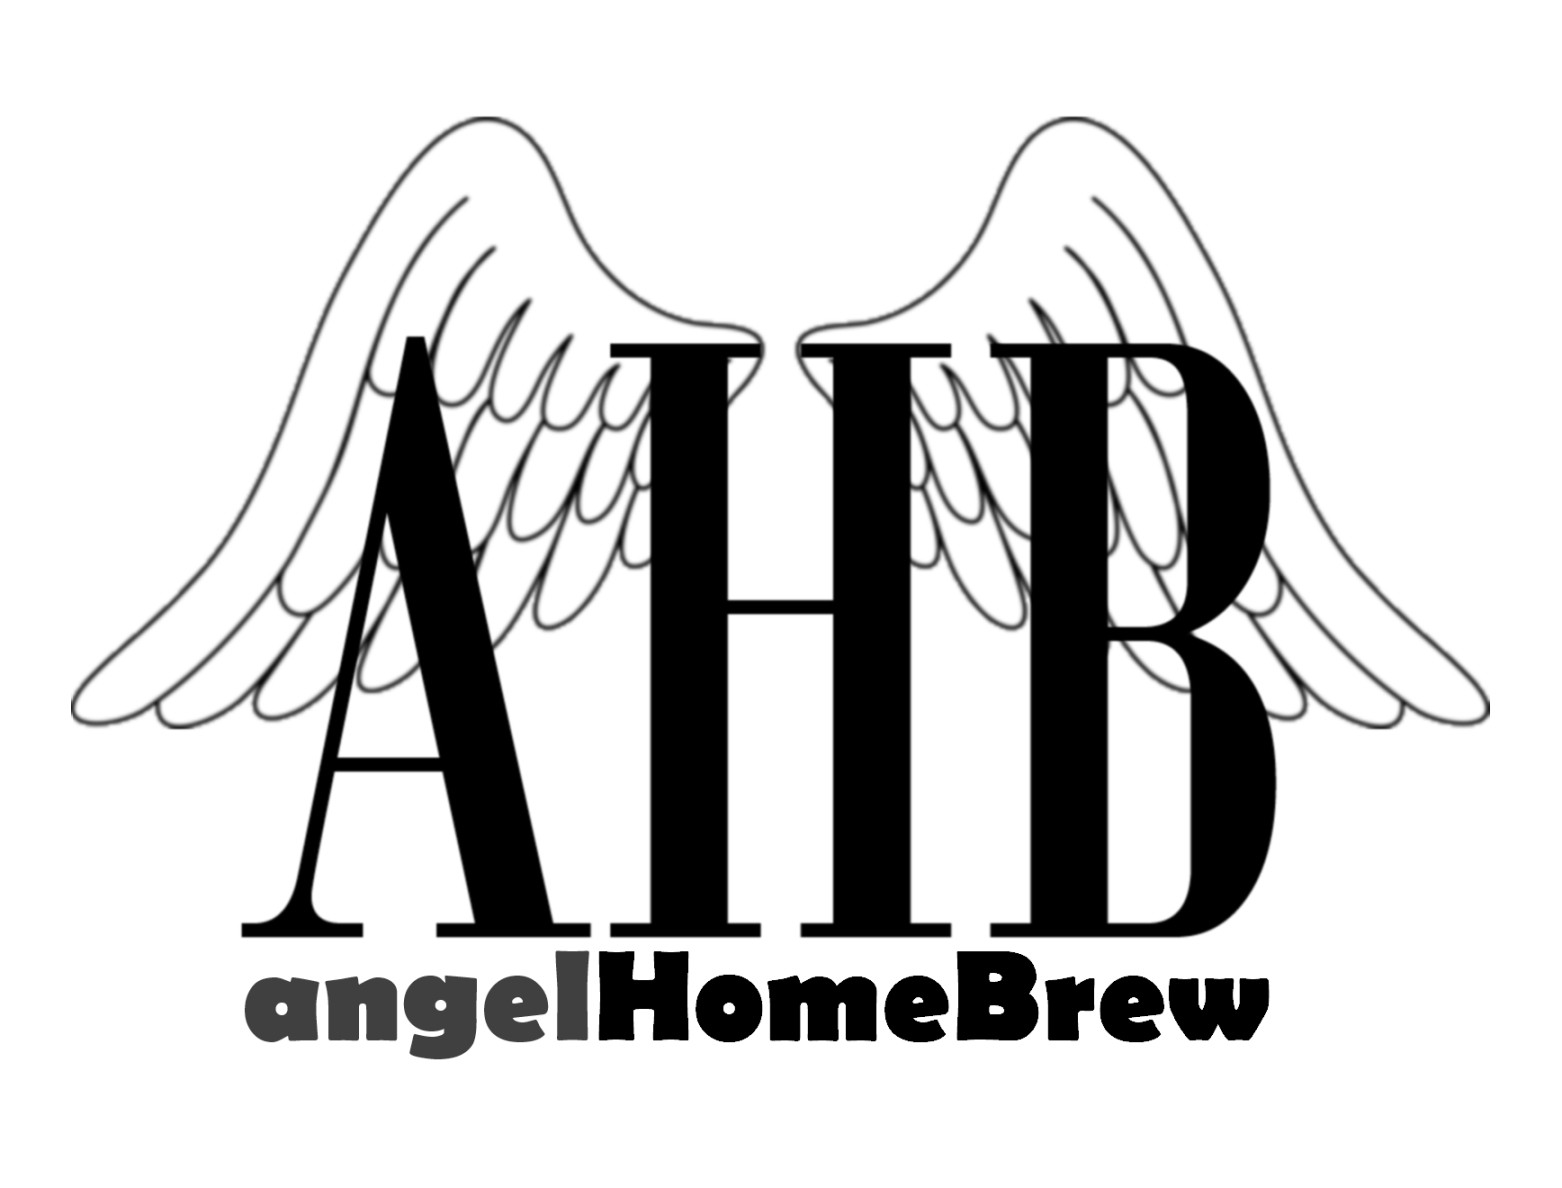 Angel HomeBrew